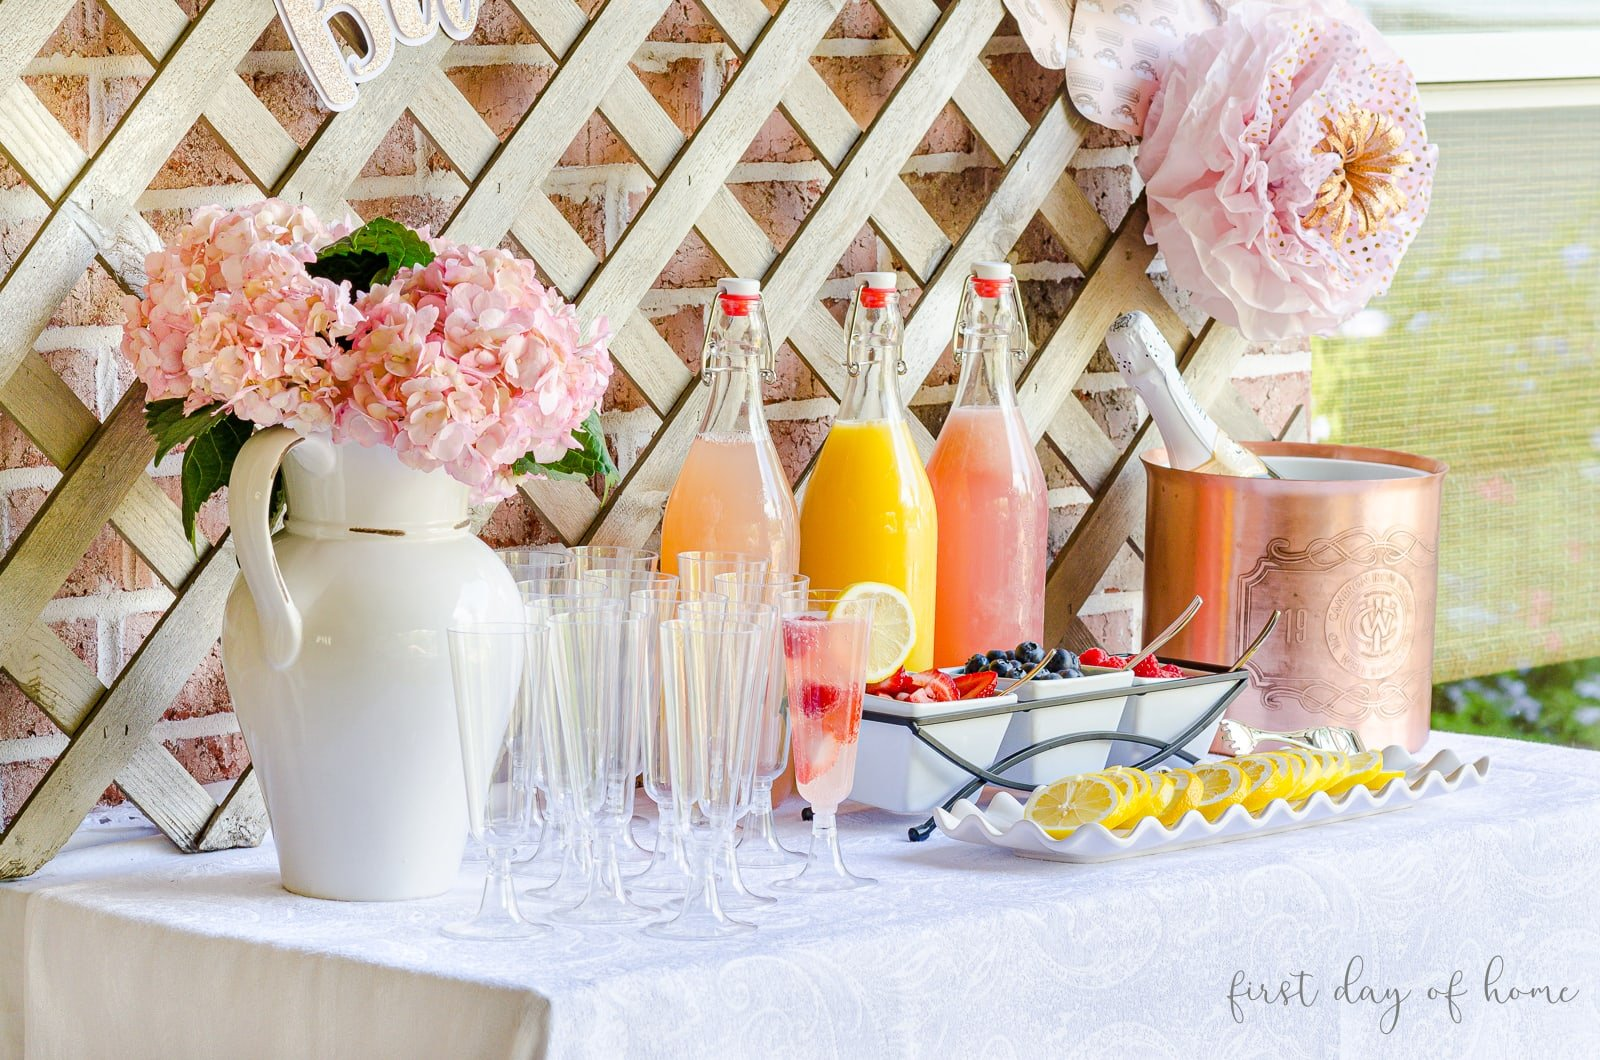 DIY mimosa bar with fresh hydrangea flowers, fruit juices, champagne and fruit garnishes